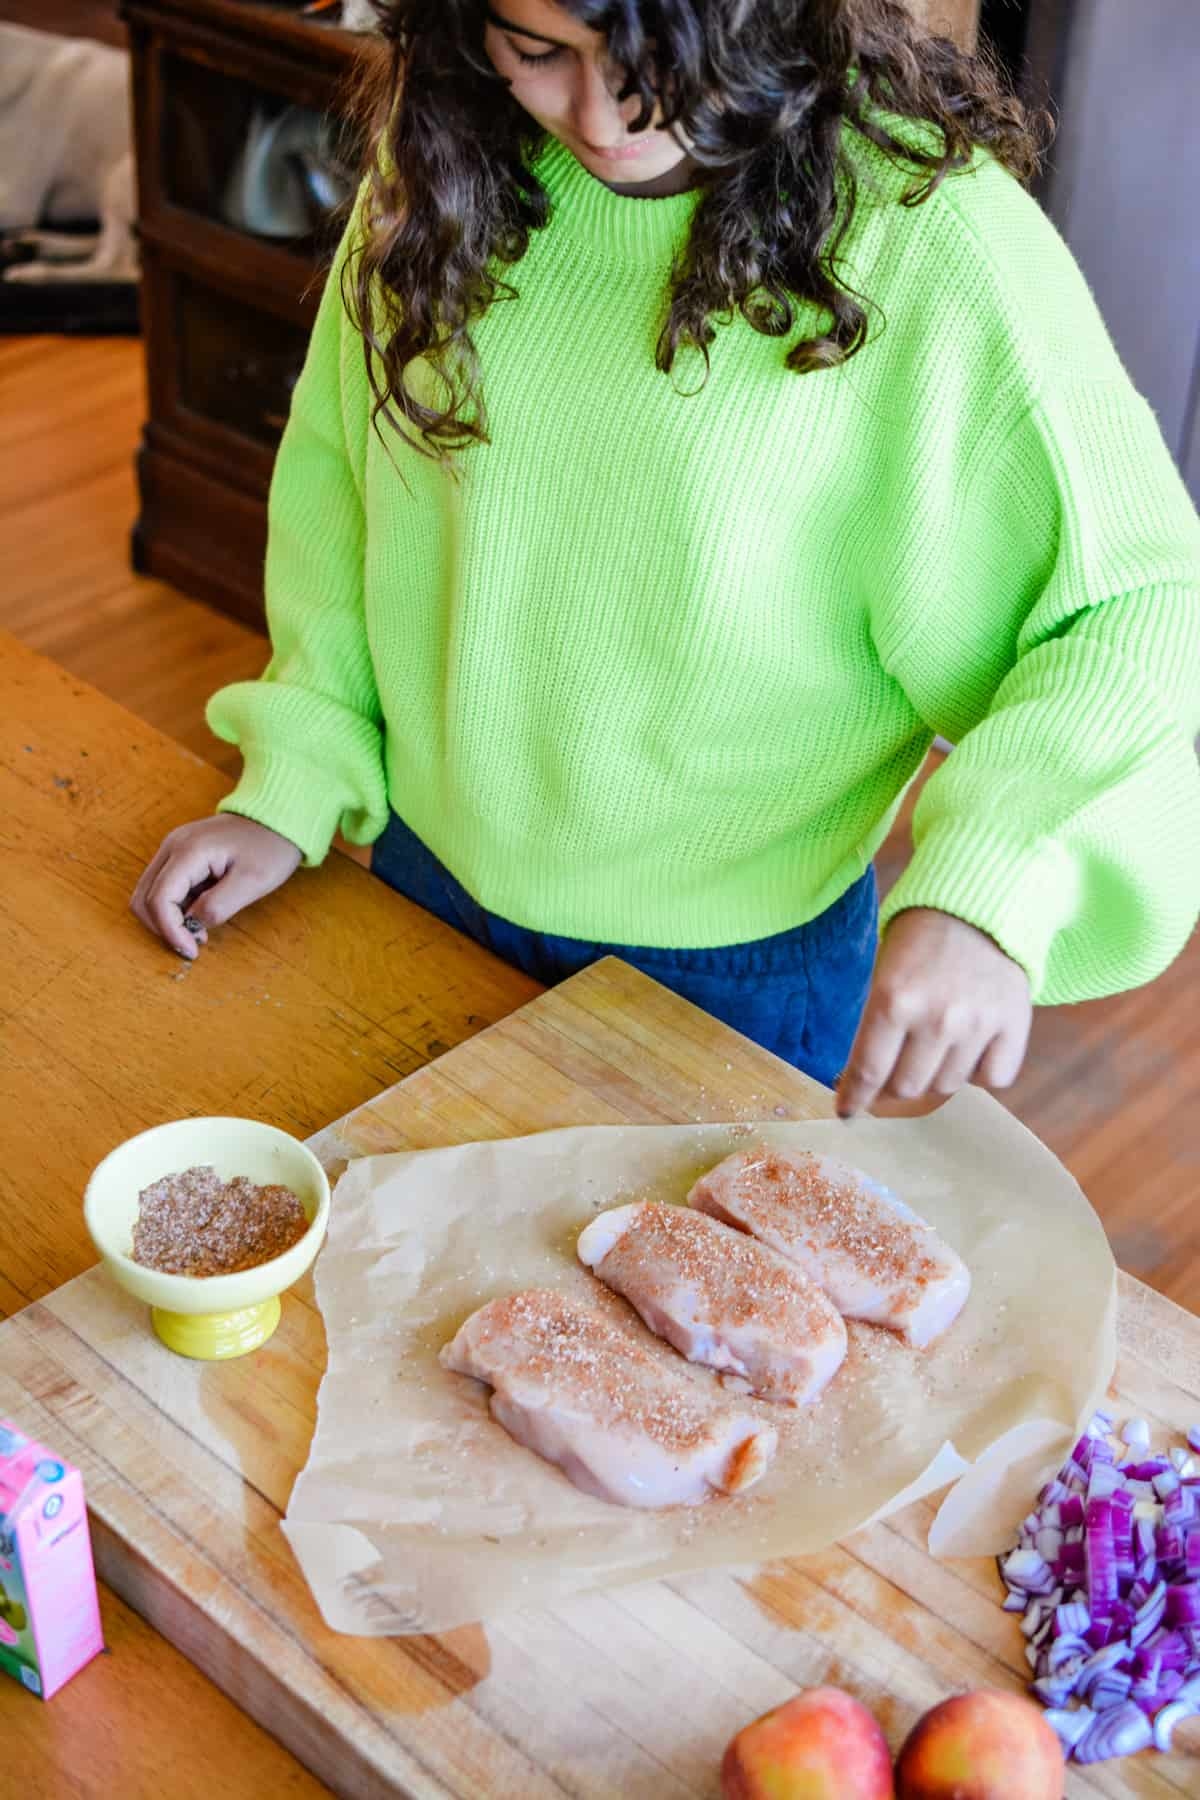 Girl sprinkling spice rub on chicken breasts sitting on a piece of parchment paper on a wooden cutting board.